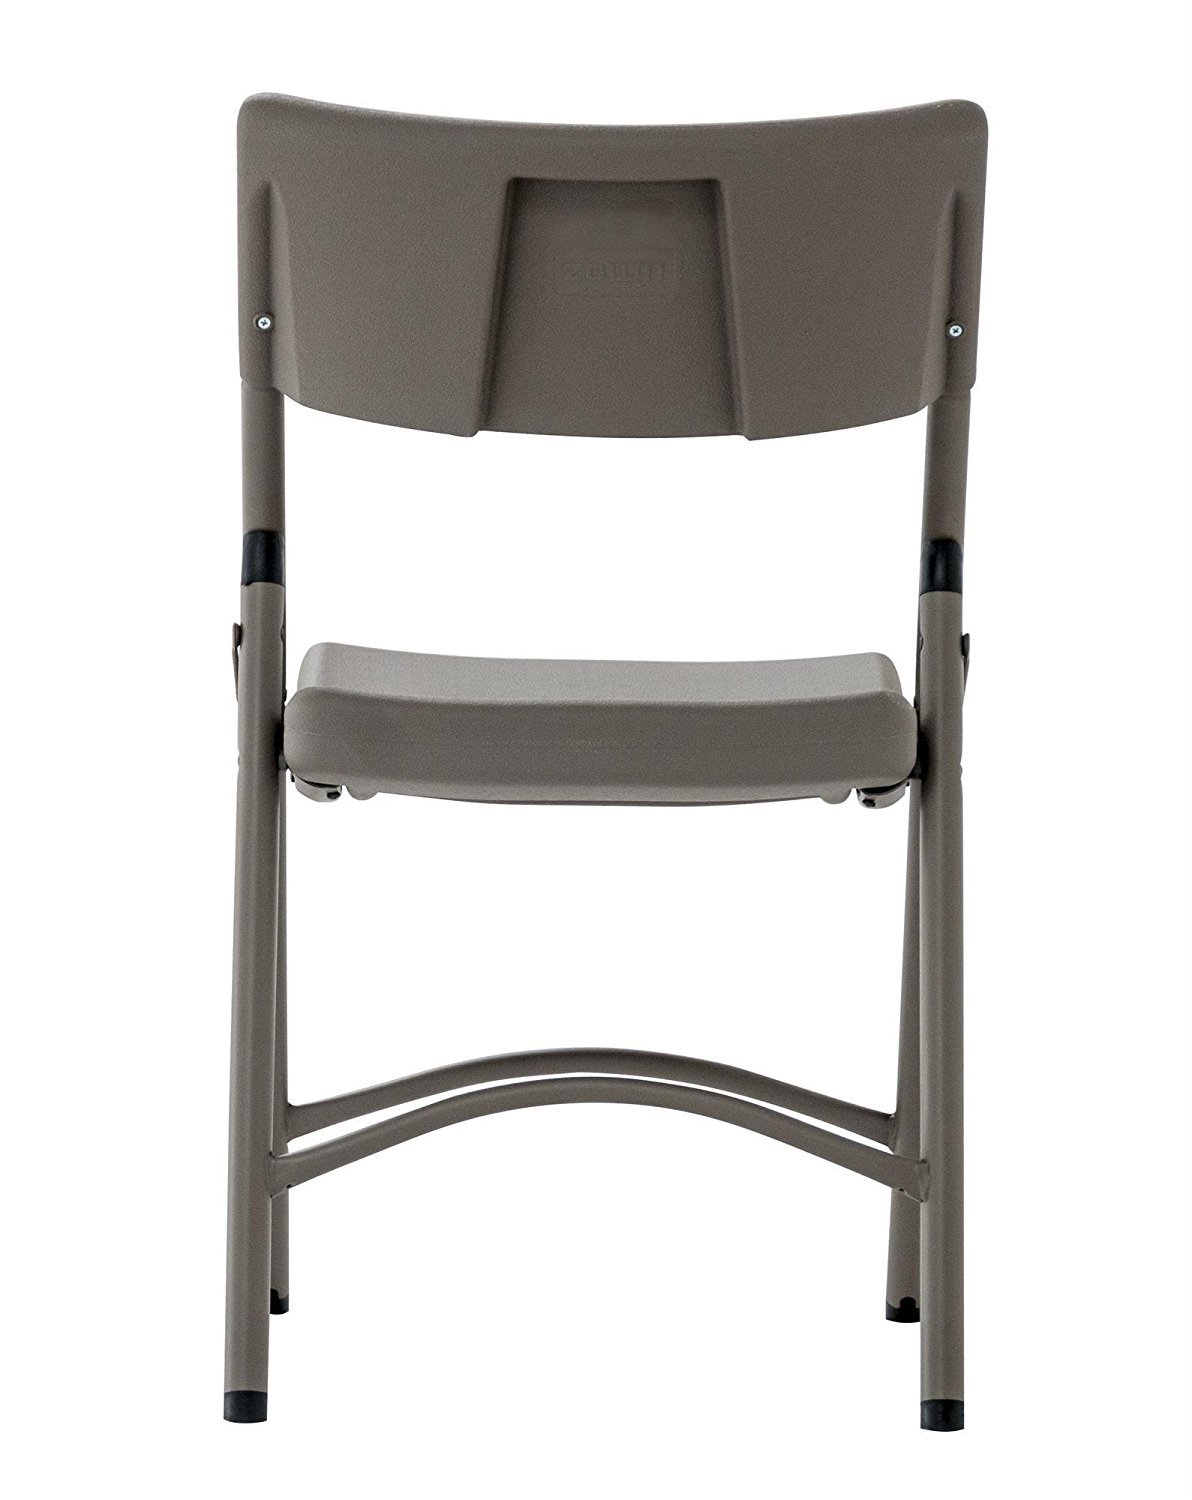 Cosco Folding Chair Details About Cosco Commercial Fan Back Resin Folding Chair